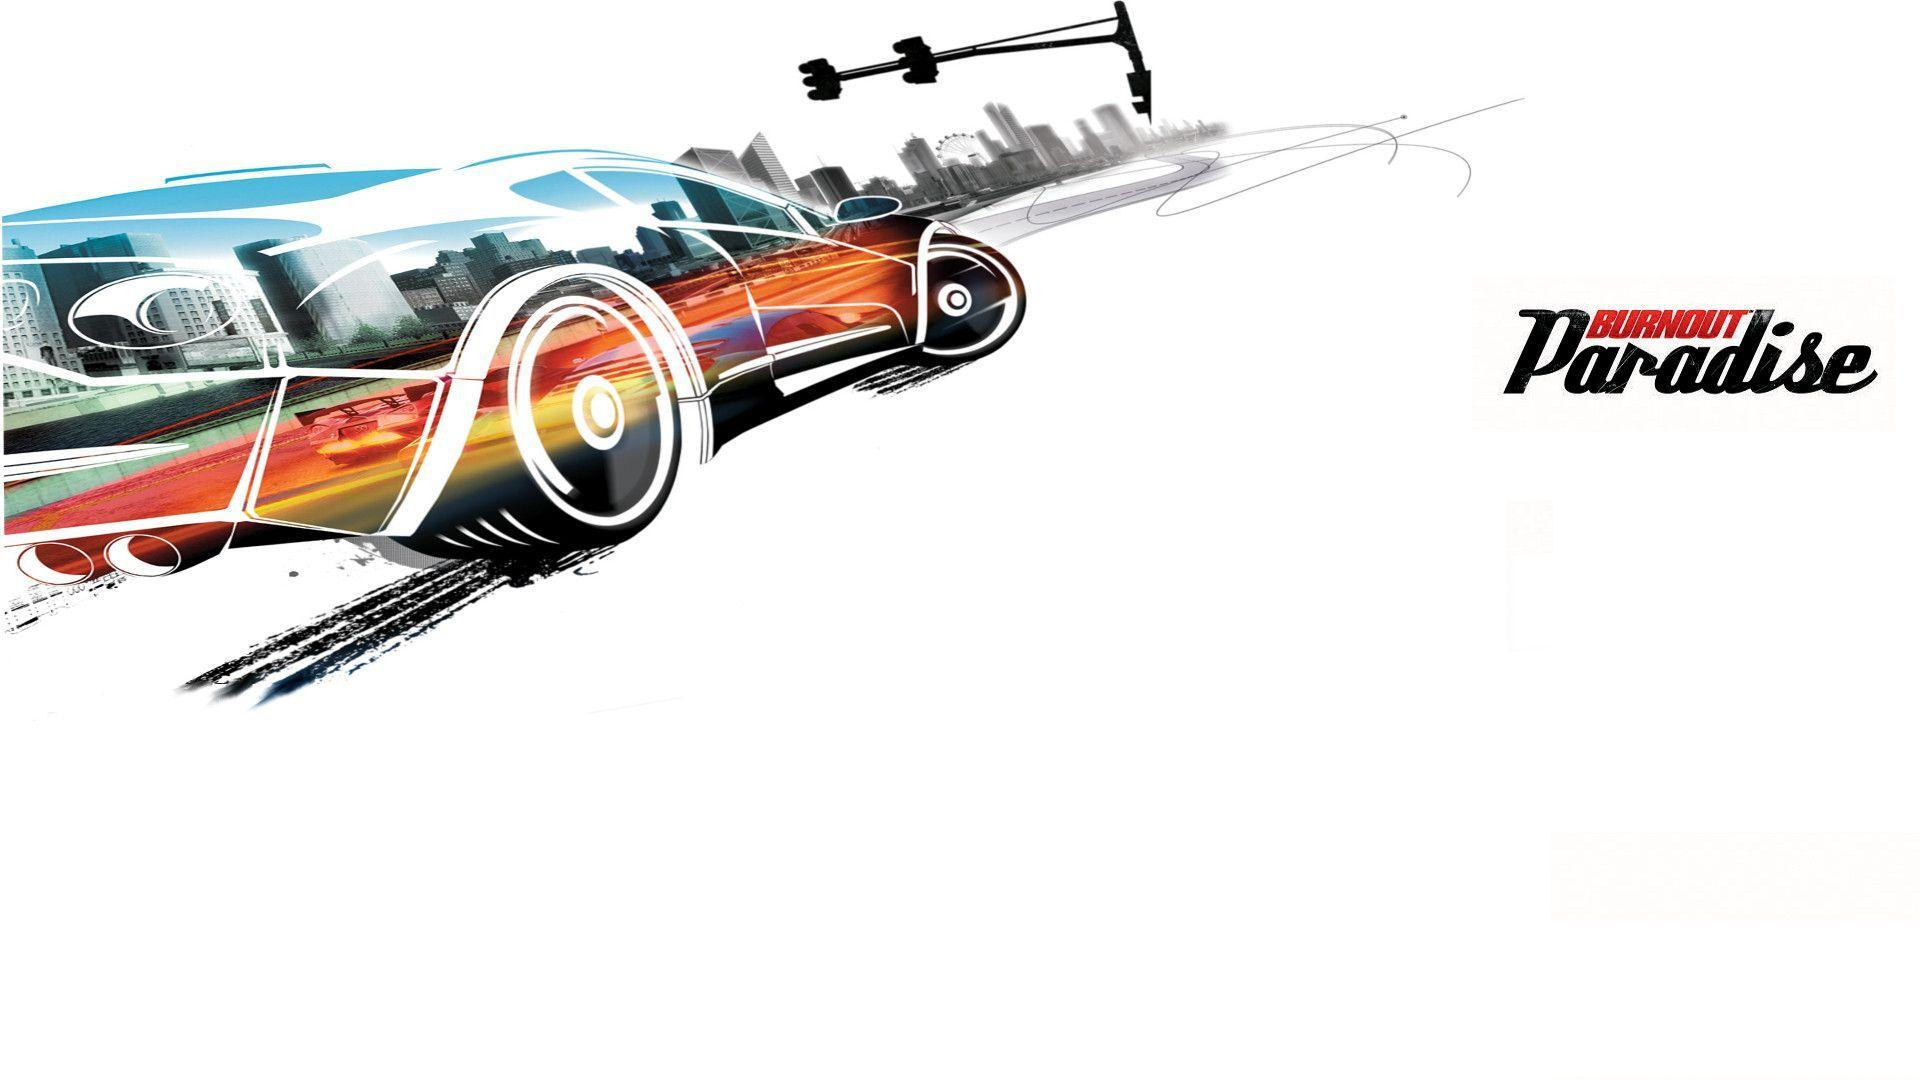 Burnout Paradise Wallpapers - Wallpaper Cave